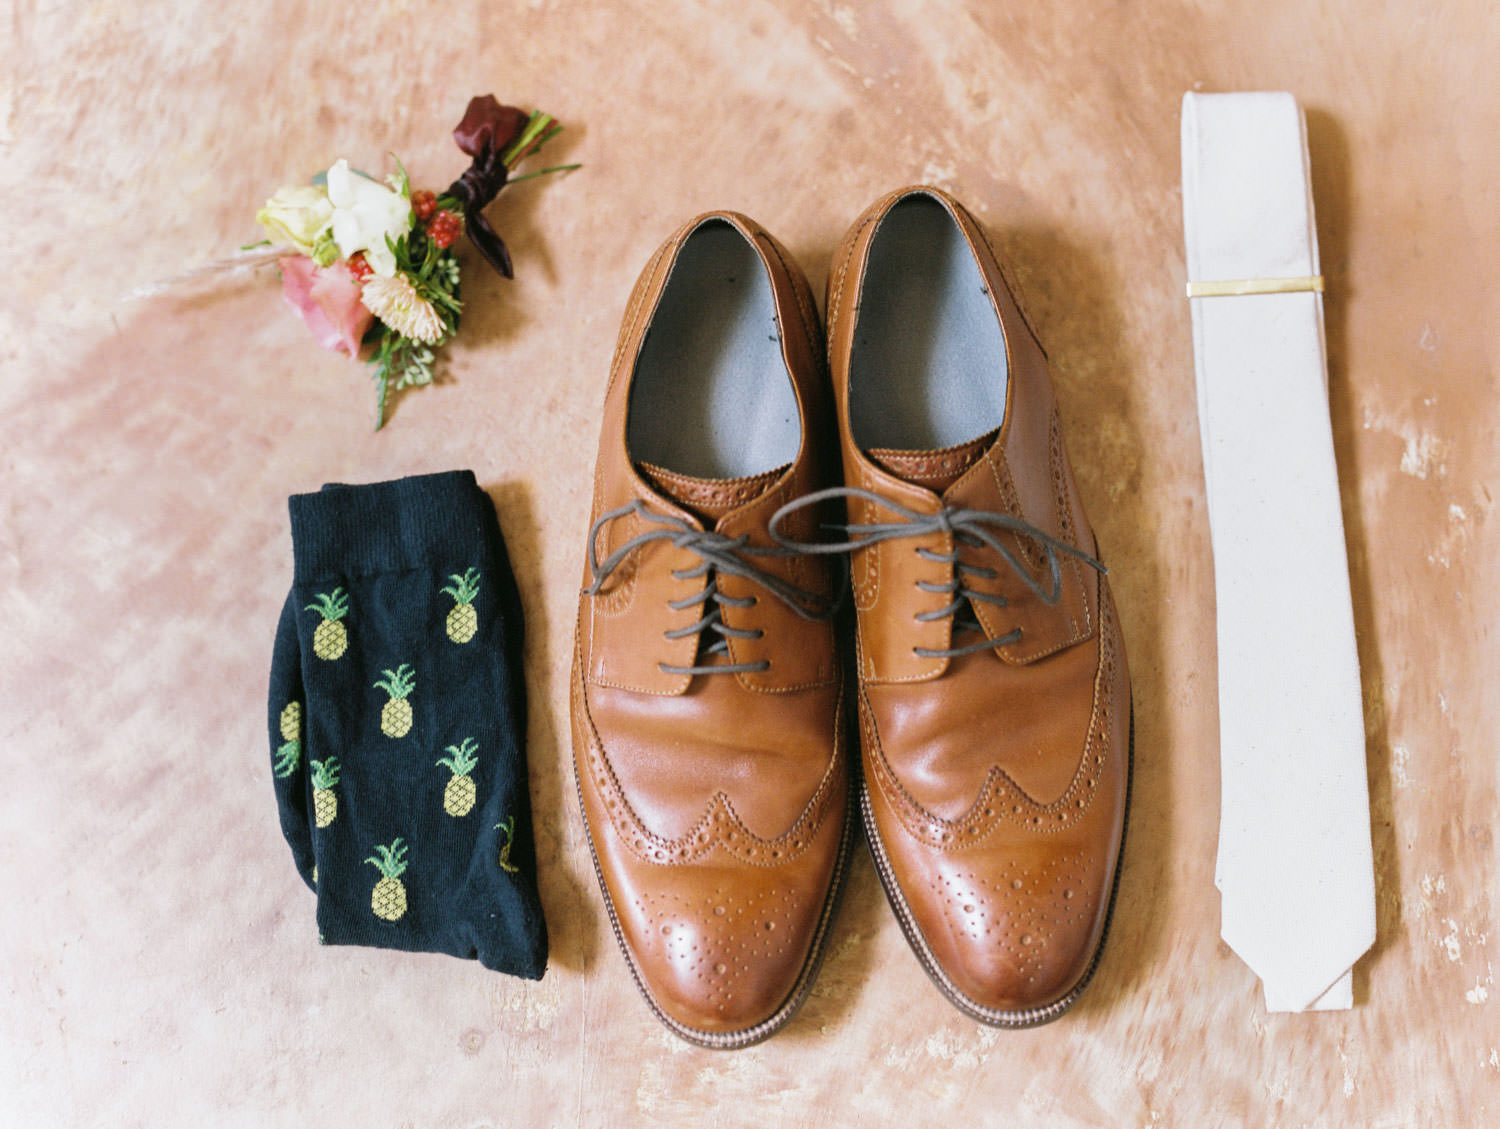 Groom details with brown leather shoes, fun pineapple socks, and ivory tie. Cavin Elizabeth Photography.